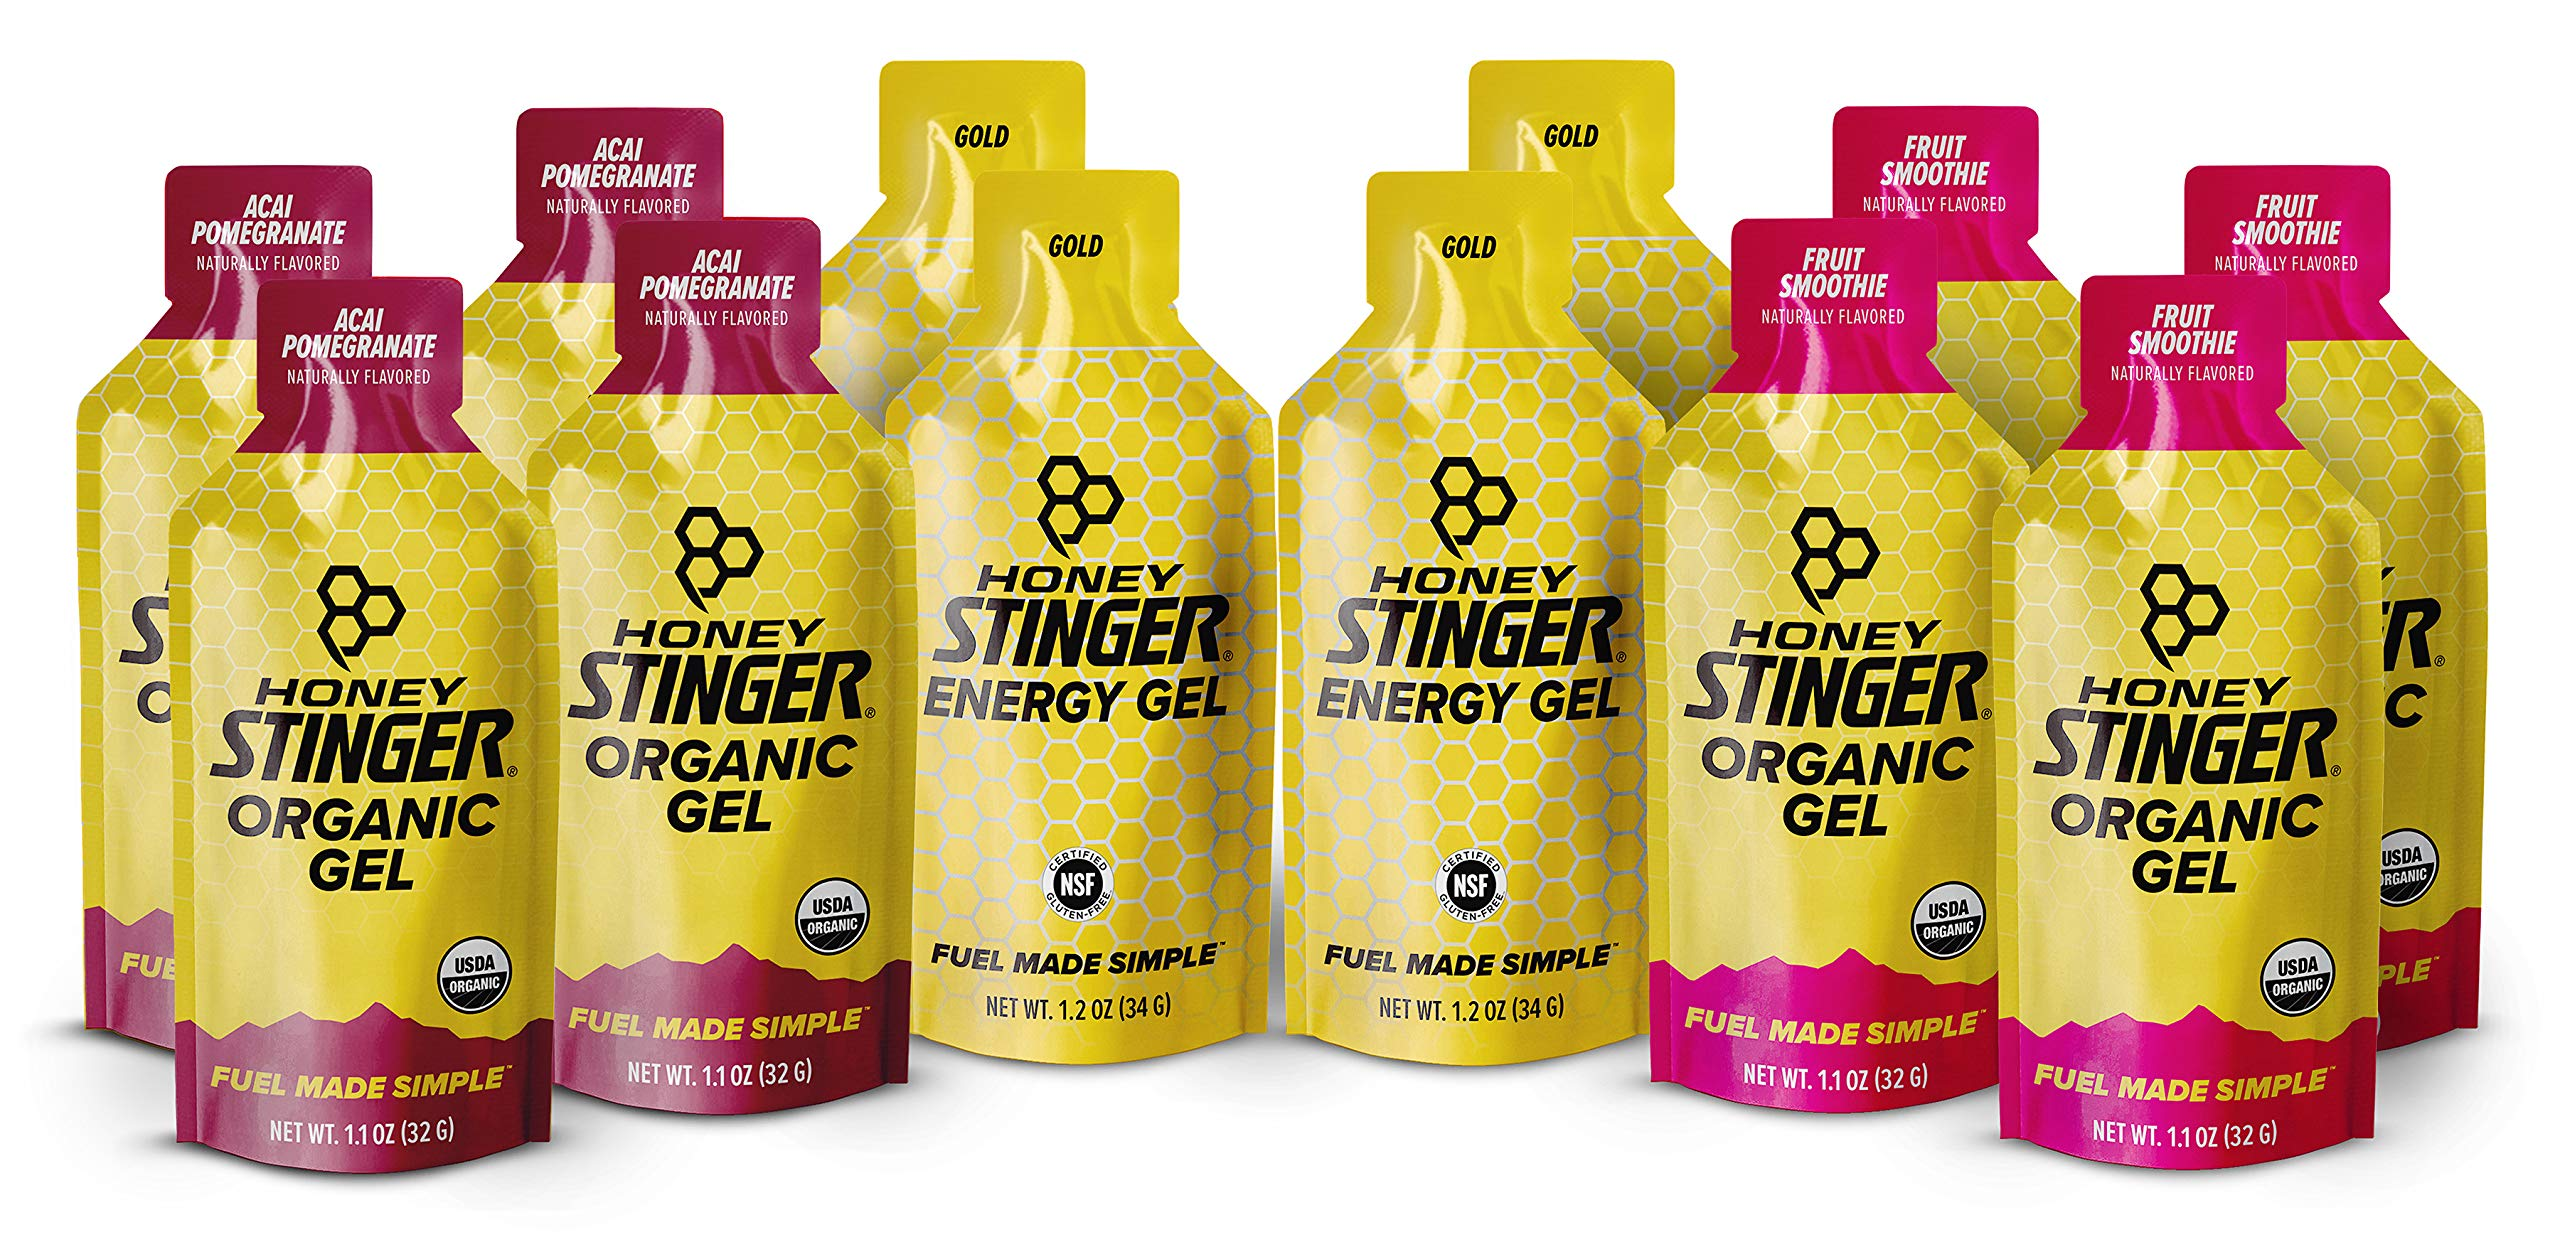 Honey Stinger Organic Energy Gels – Variety Pack with Sticker­ – 12 Count – 4 of Each Flavor – Energy Source for Any Activity – Acai Pomegranate, Gold & Fruit Smoothie